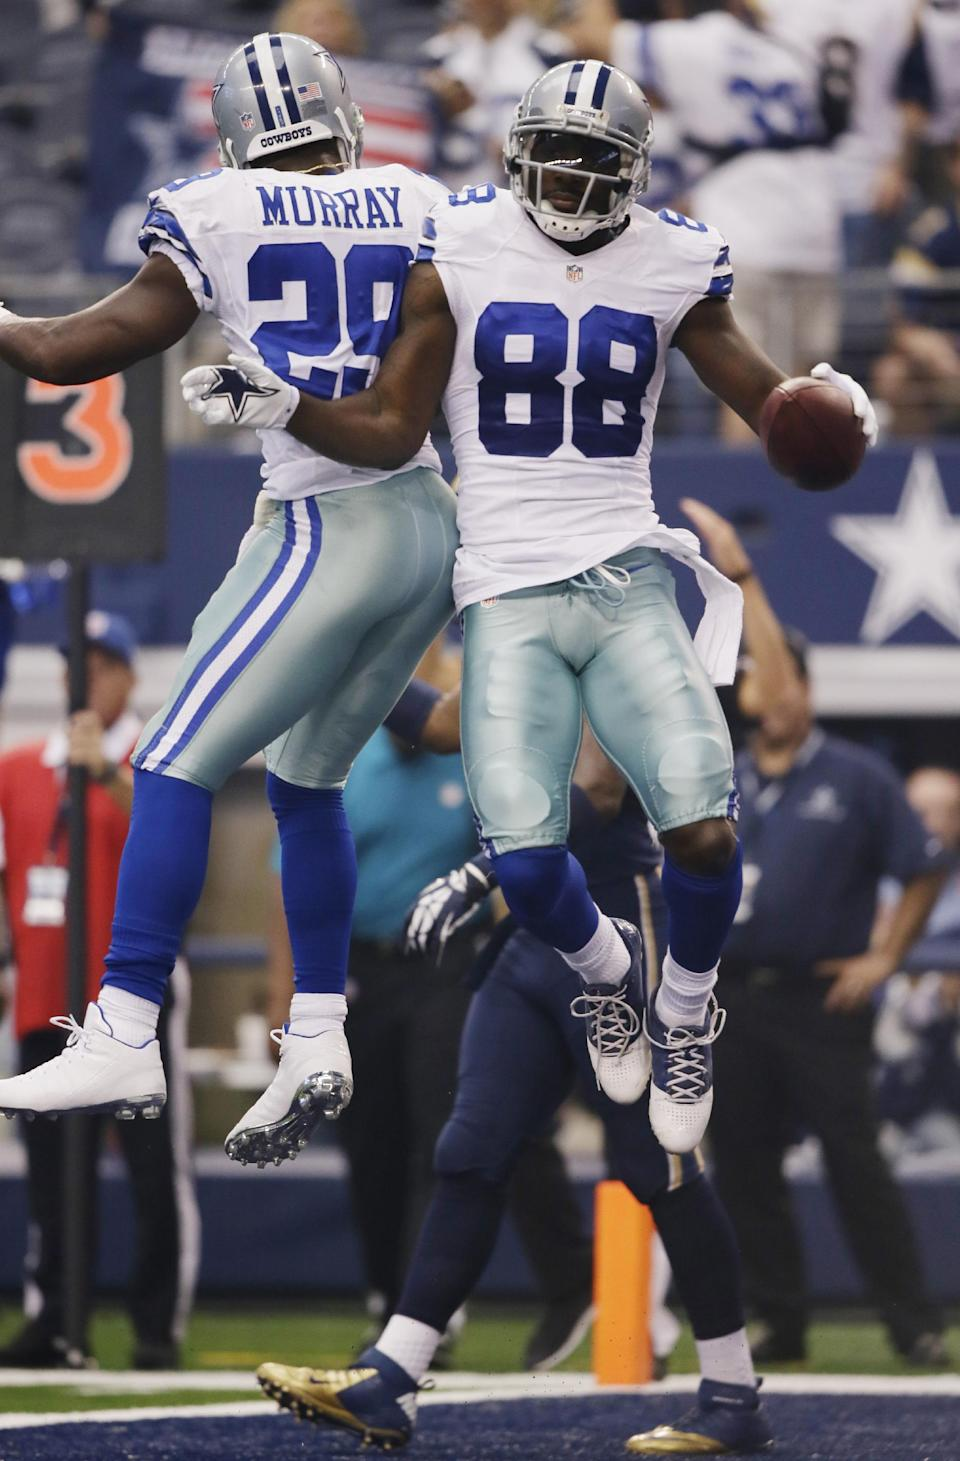 Big or bad game, Cowboys' Murray keeps churning